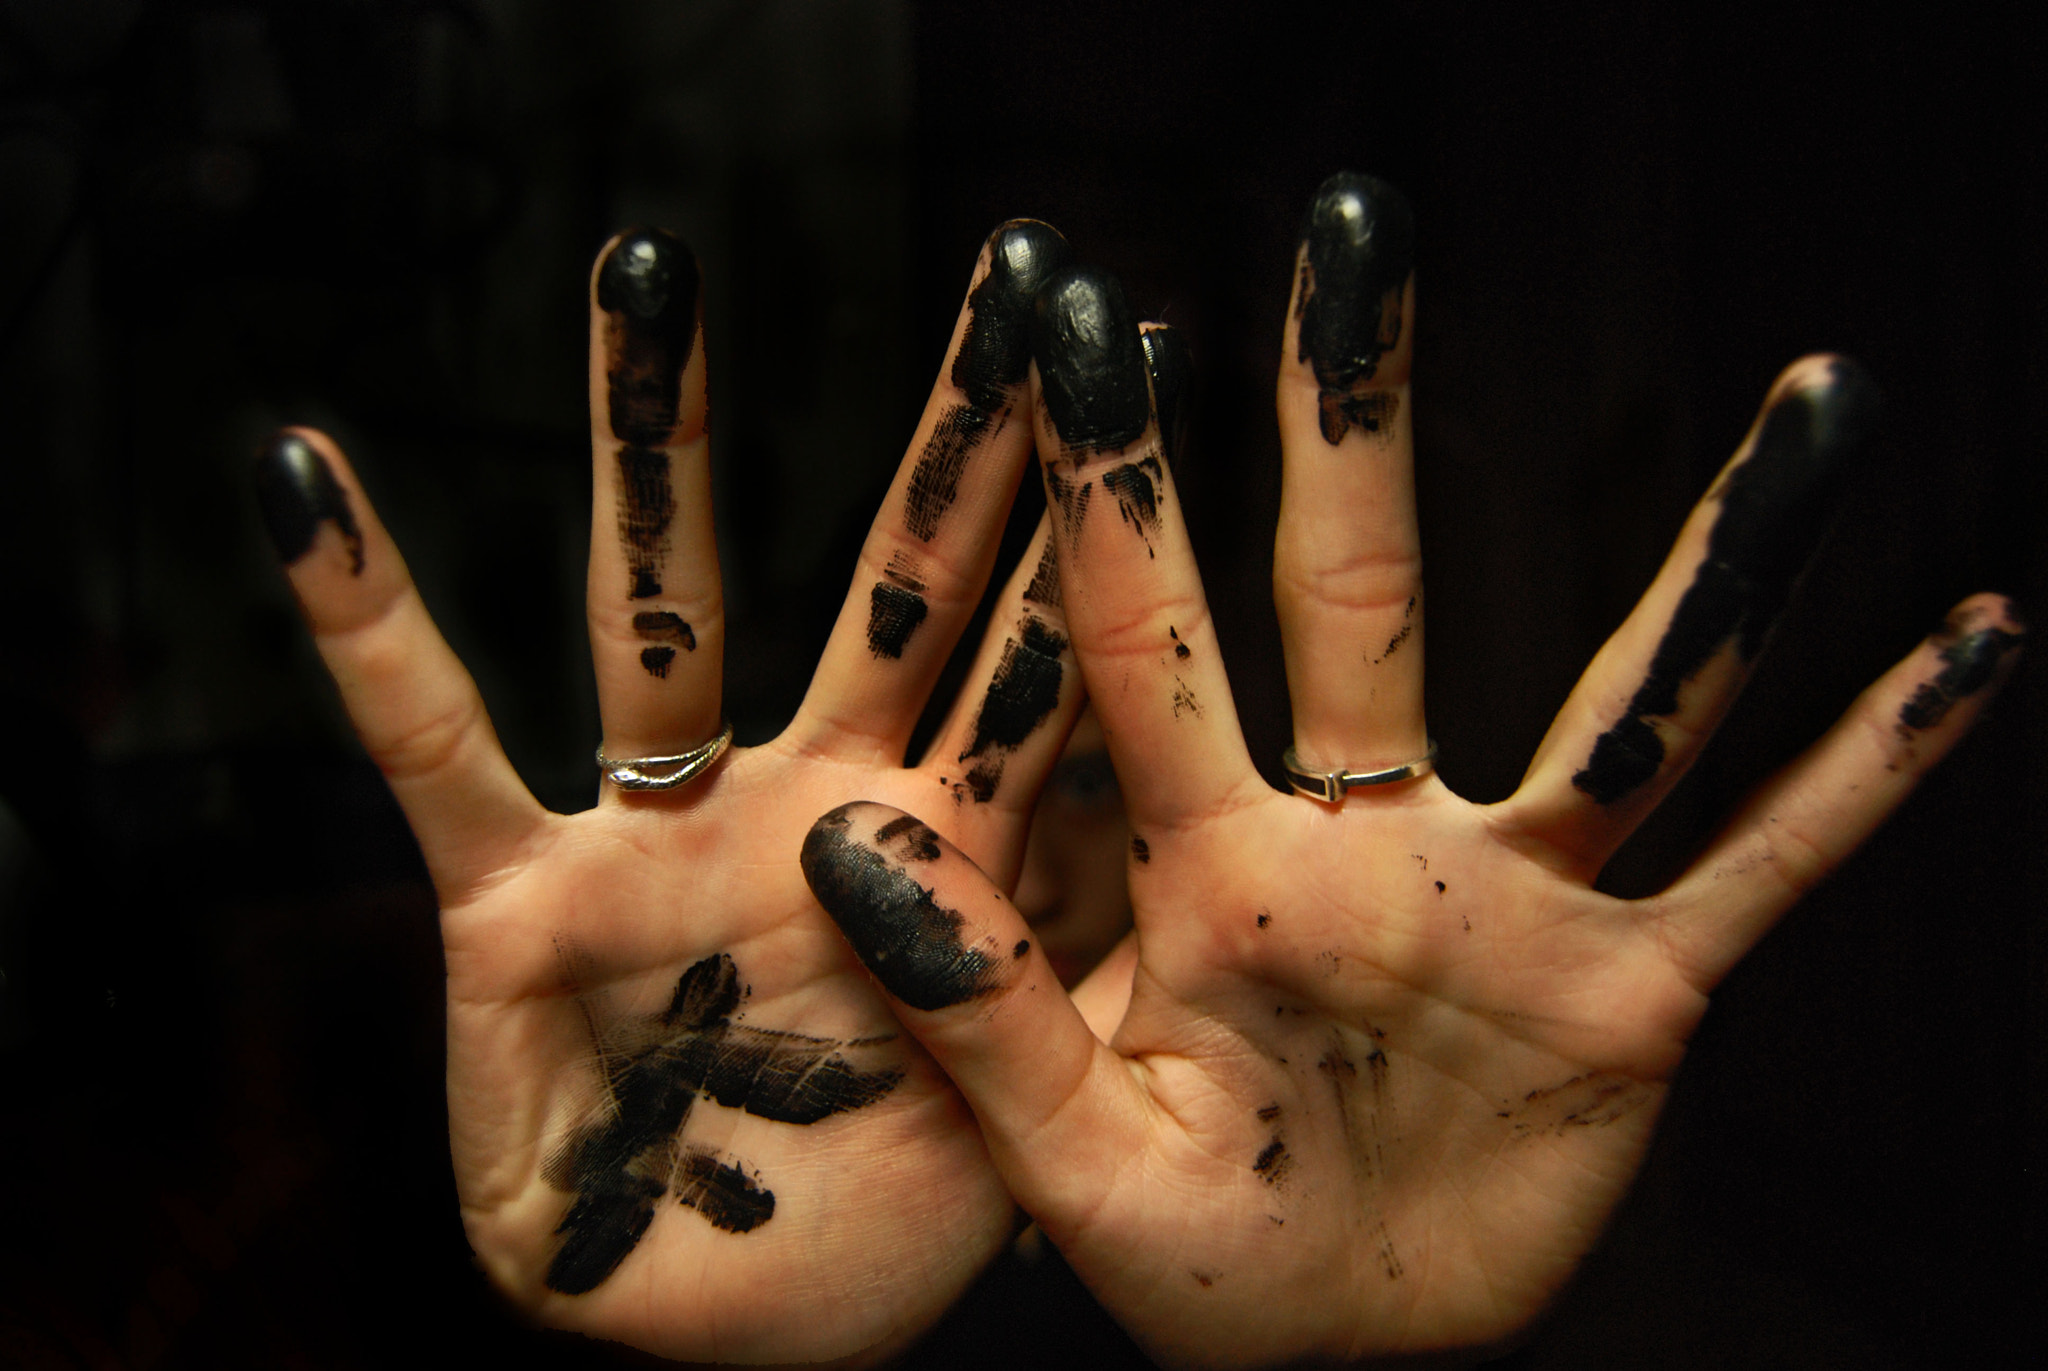 Photograph Dirty hands by Fune García on 500px